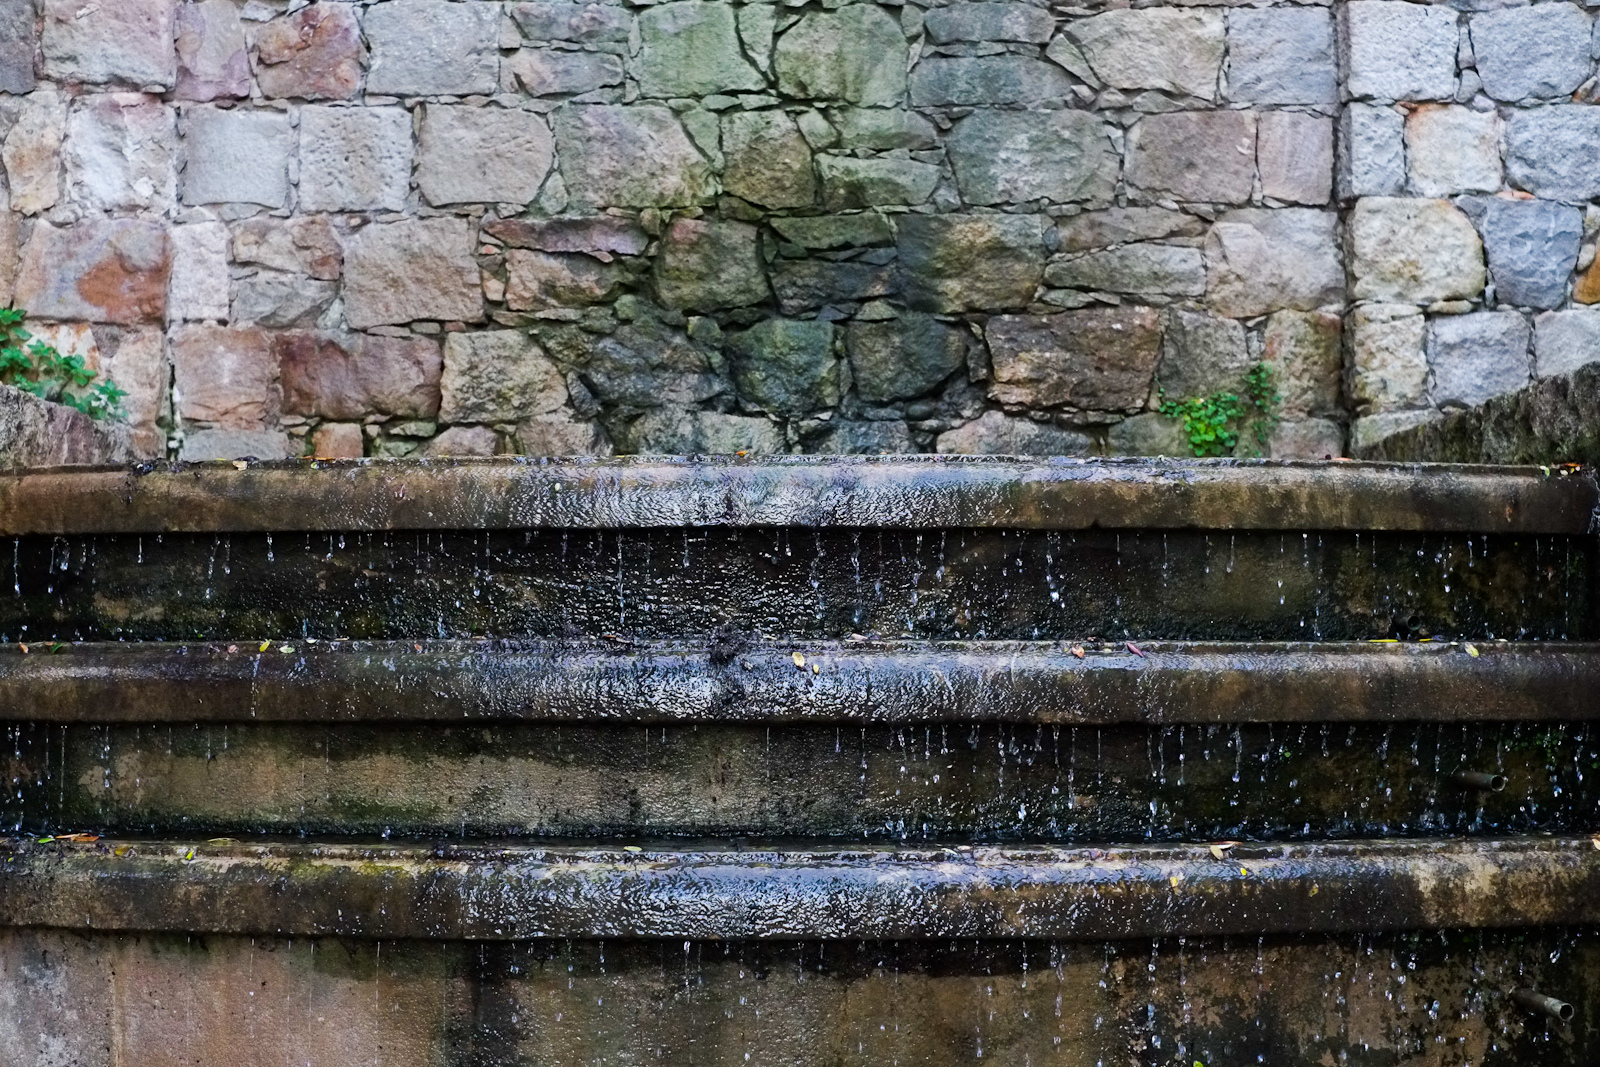 Waterfall at the Grec Gardens | © mingusmutter